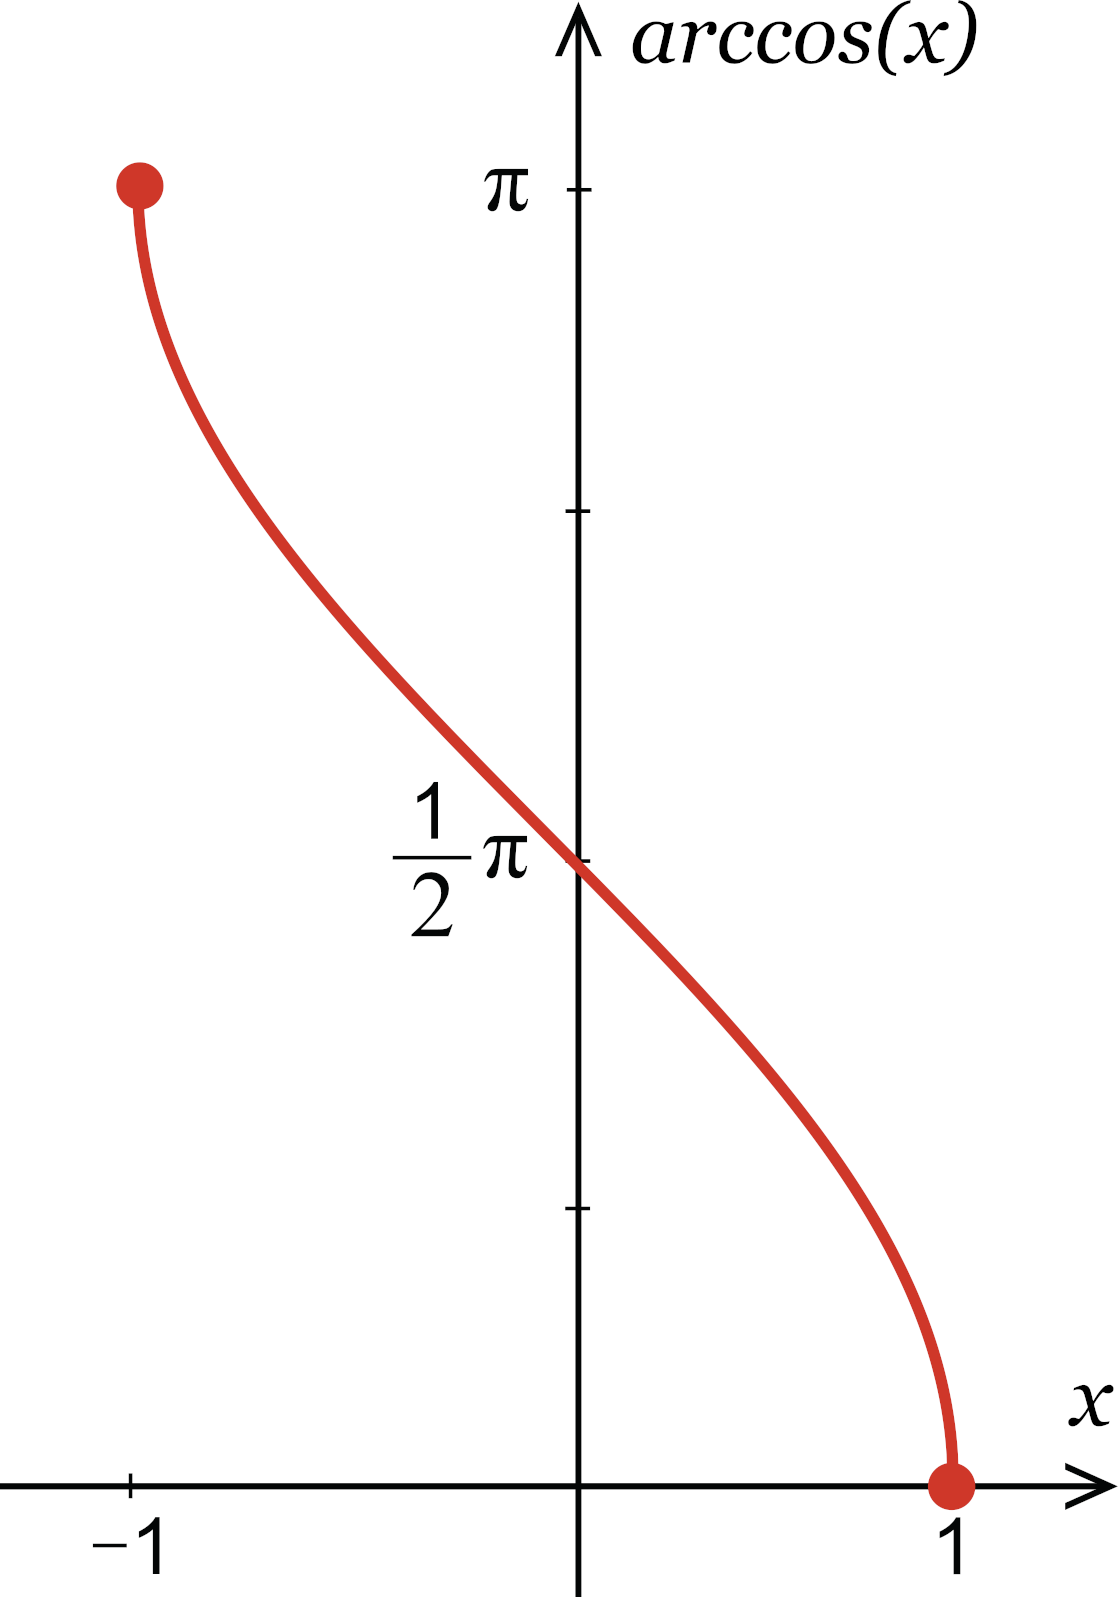 illustration showing the the range of possible values for arccos from the coordinate (-1, pi) to (1, 0)